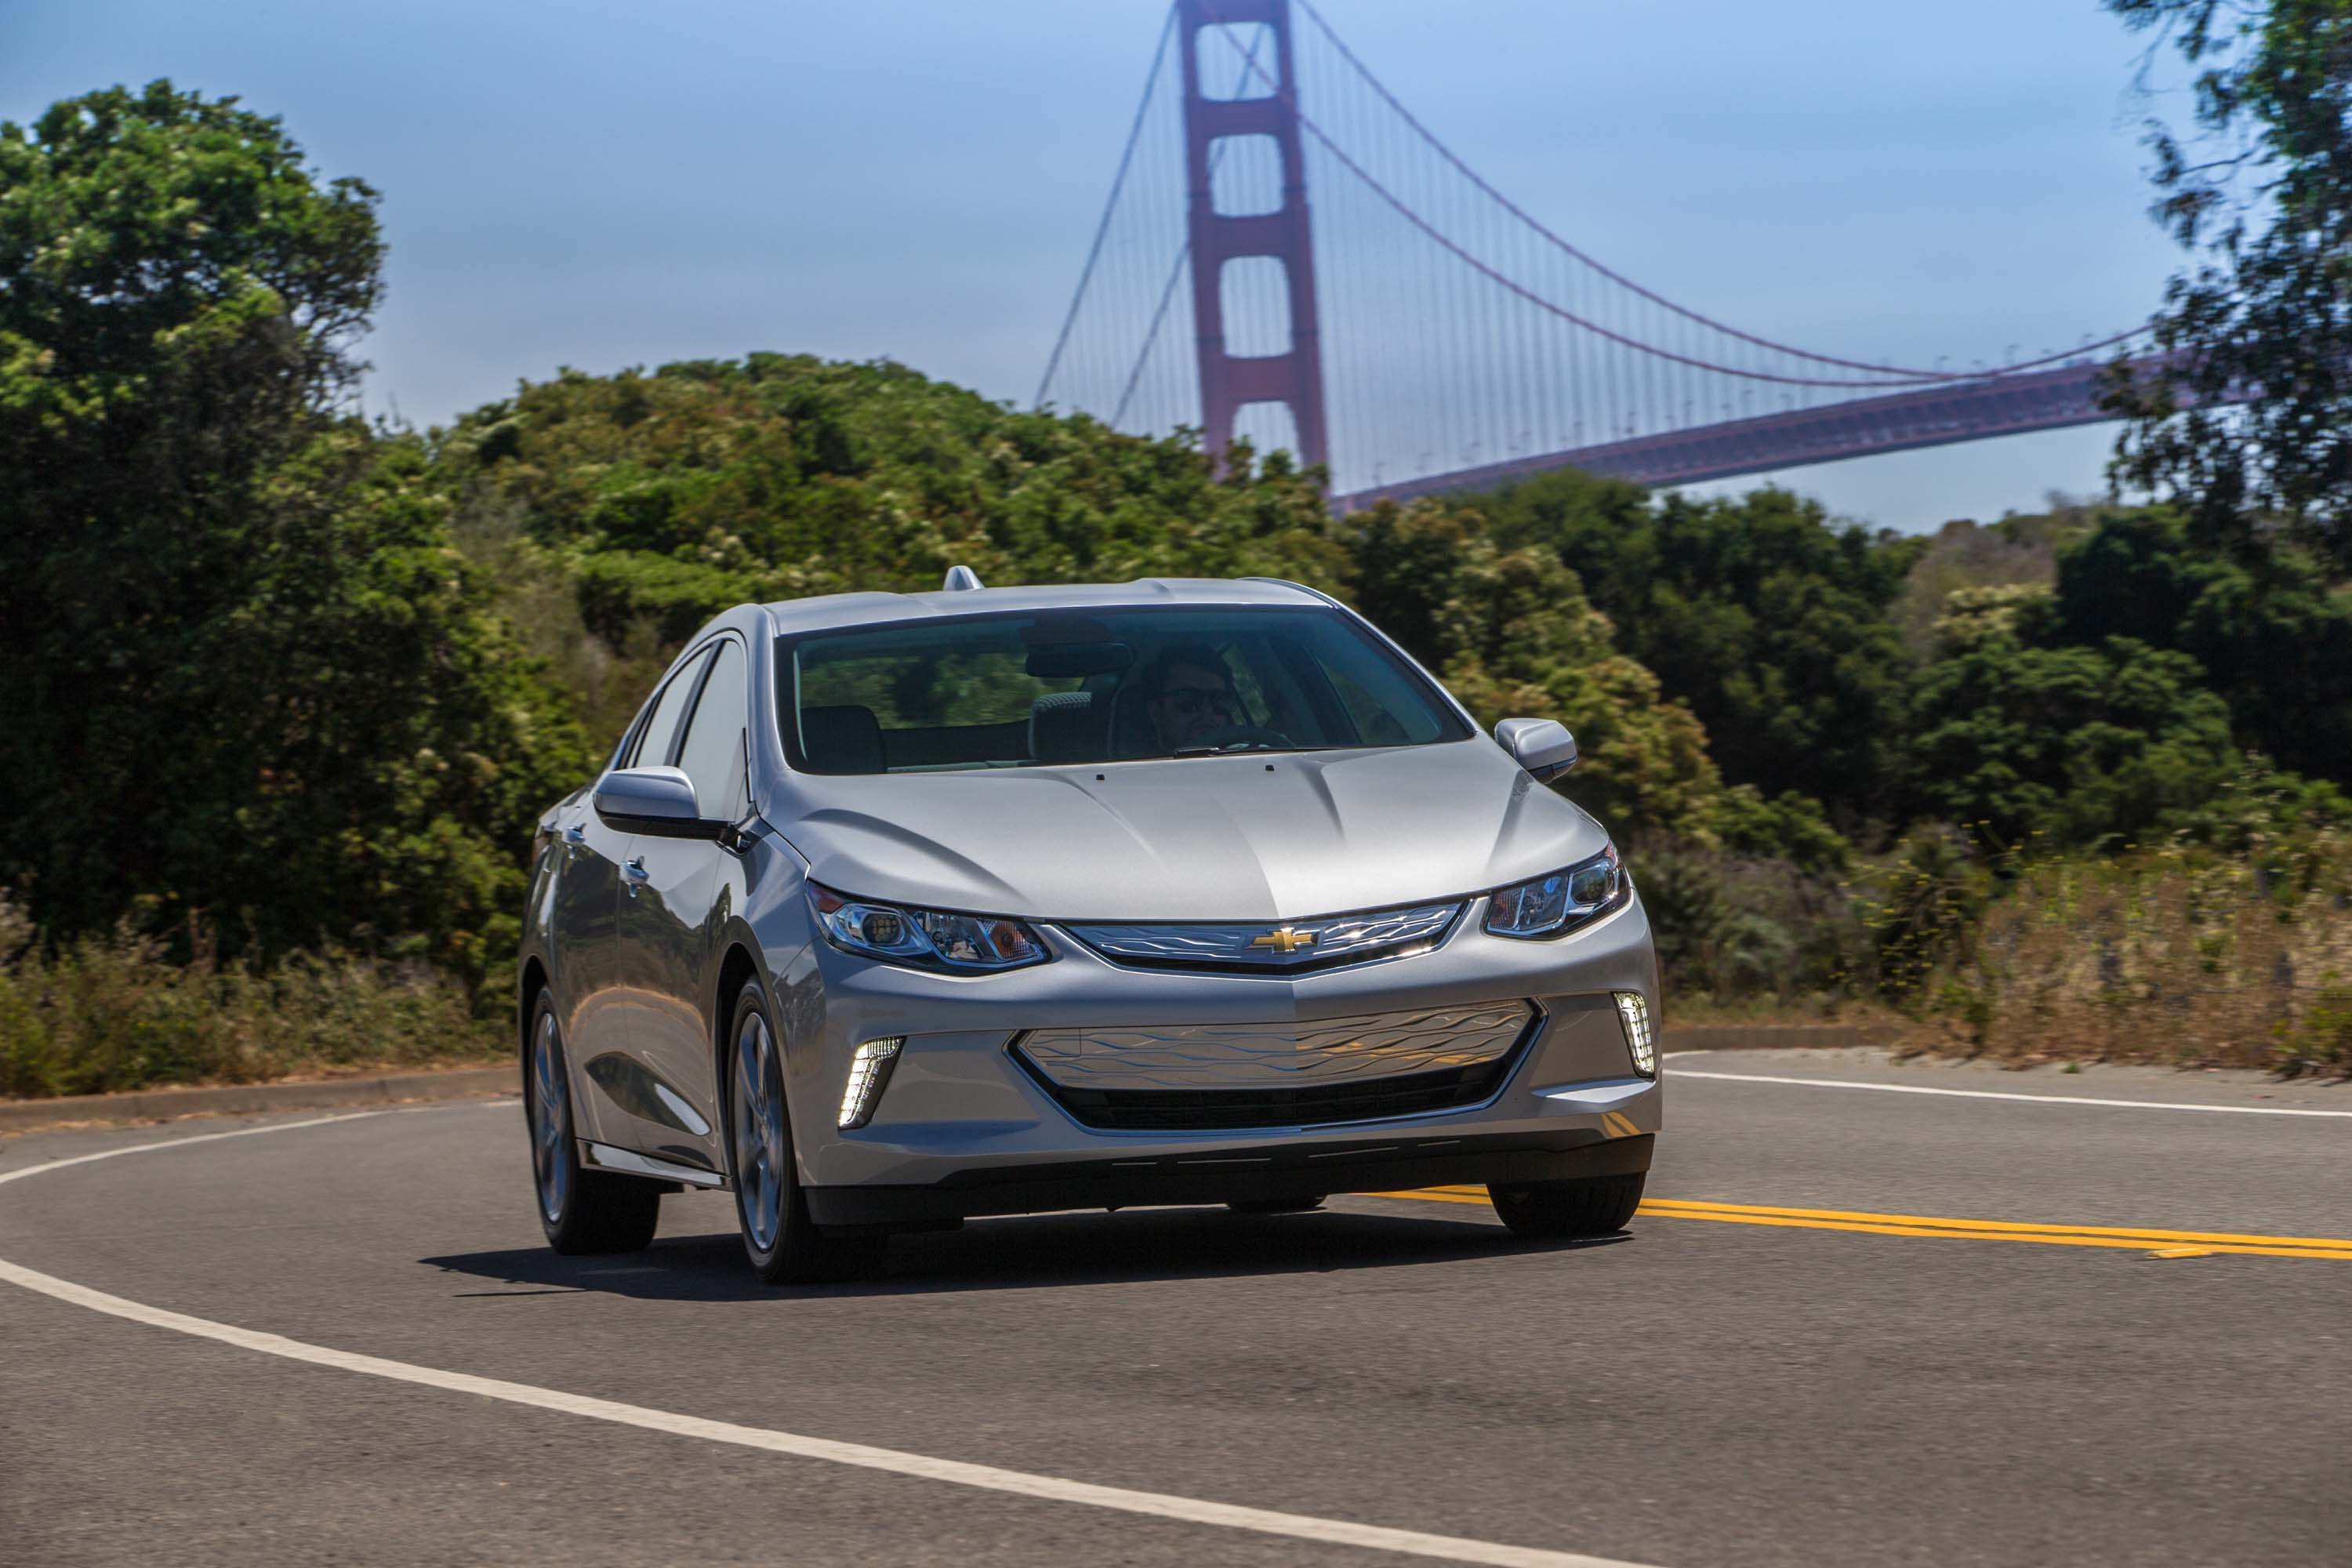 55 New 2019 Chevy Volt Prices